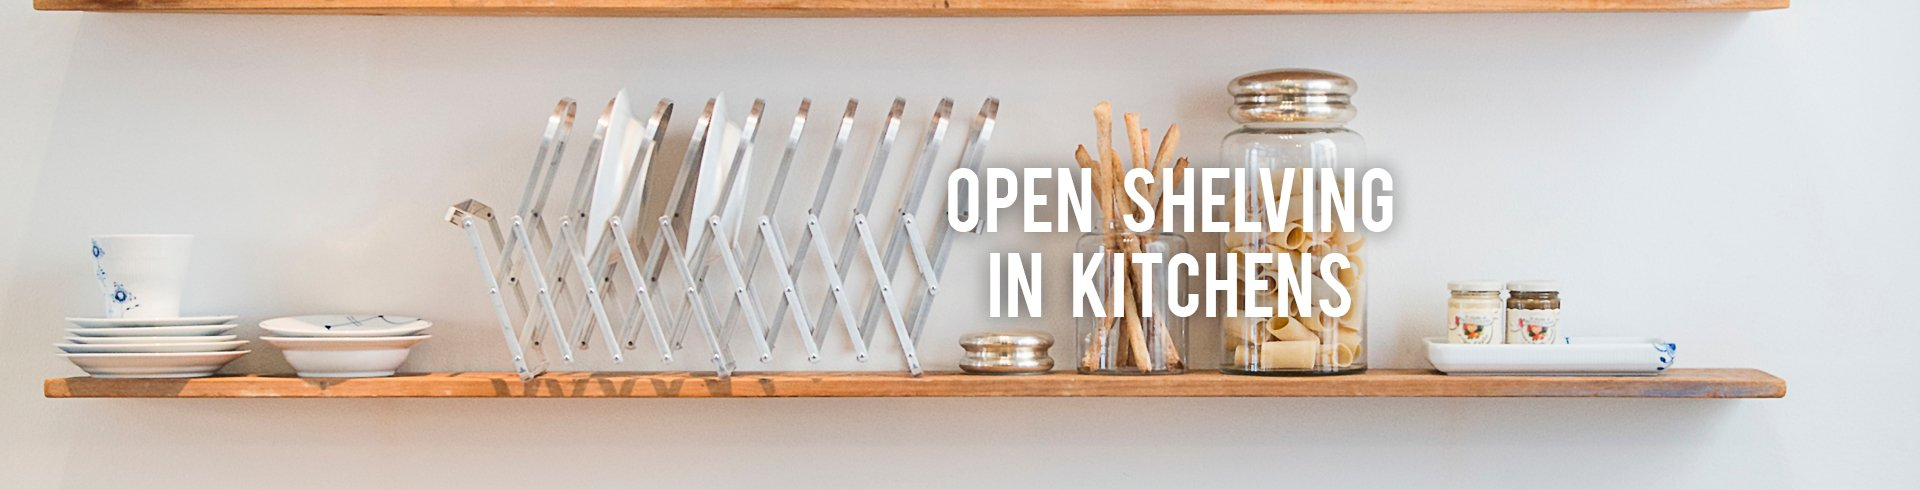 Shelving For Kitchens Open Shelving In Kitchens Rc Willey Furniture Store